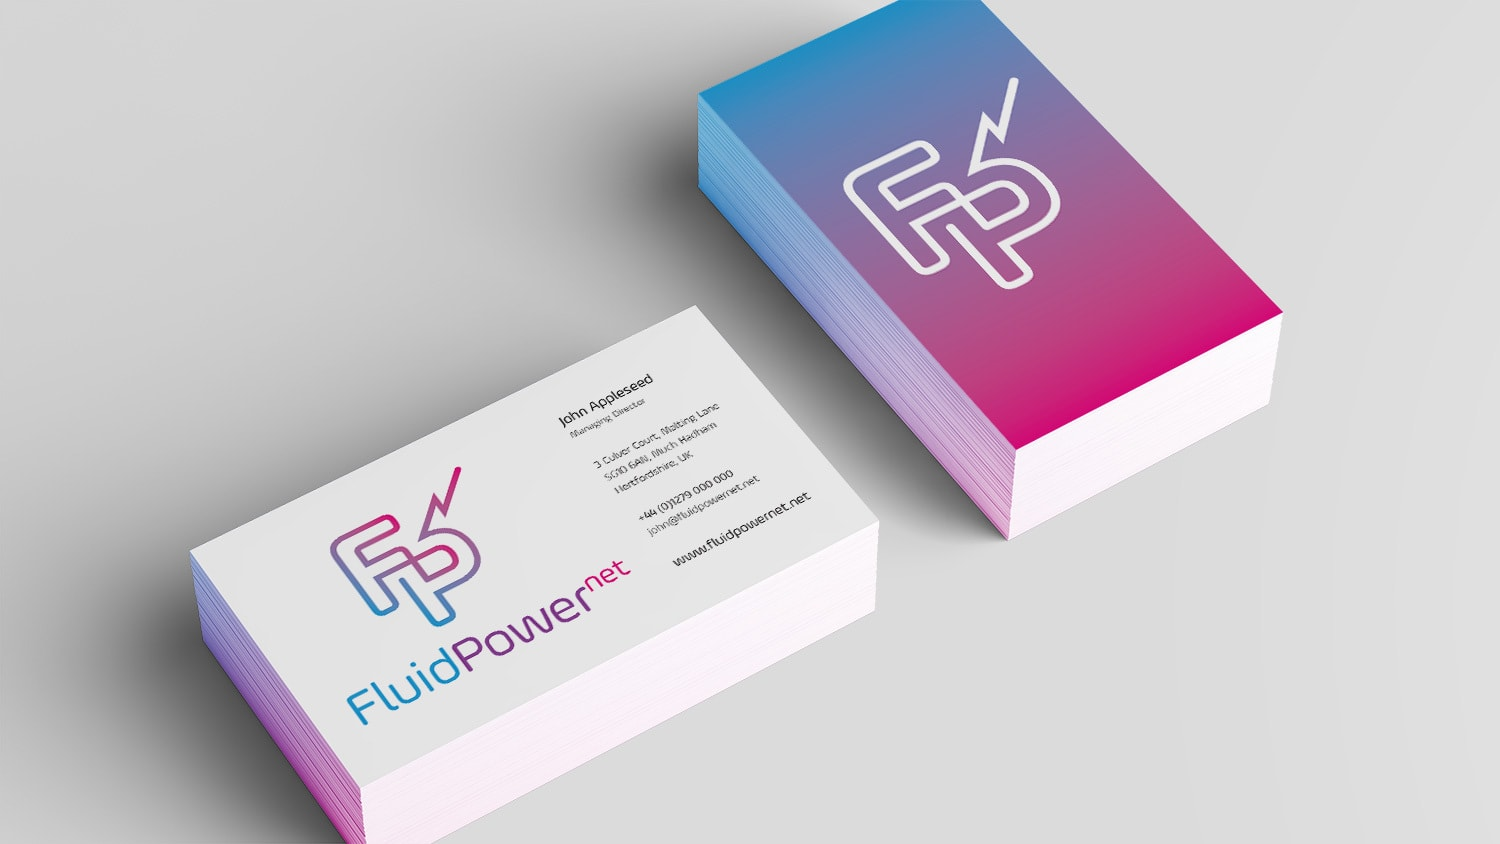 Branding design business cards for Fluid Power Net